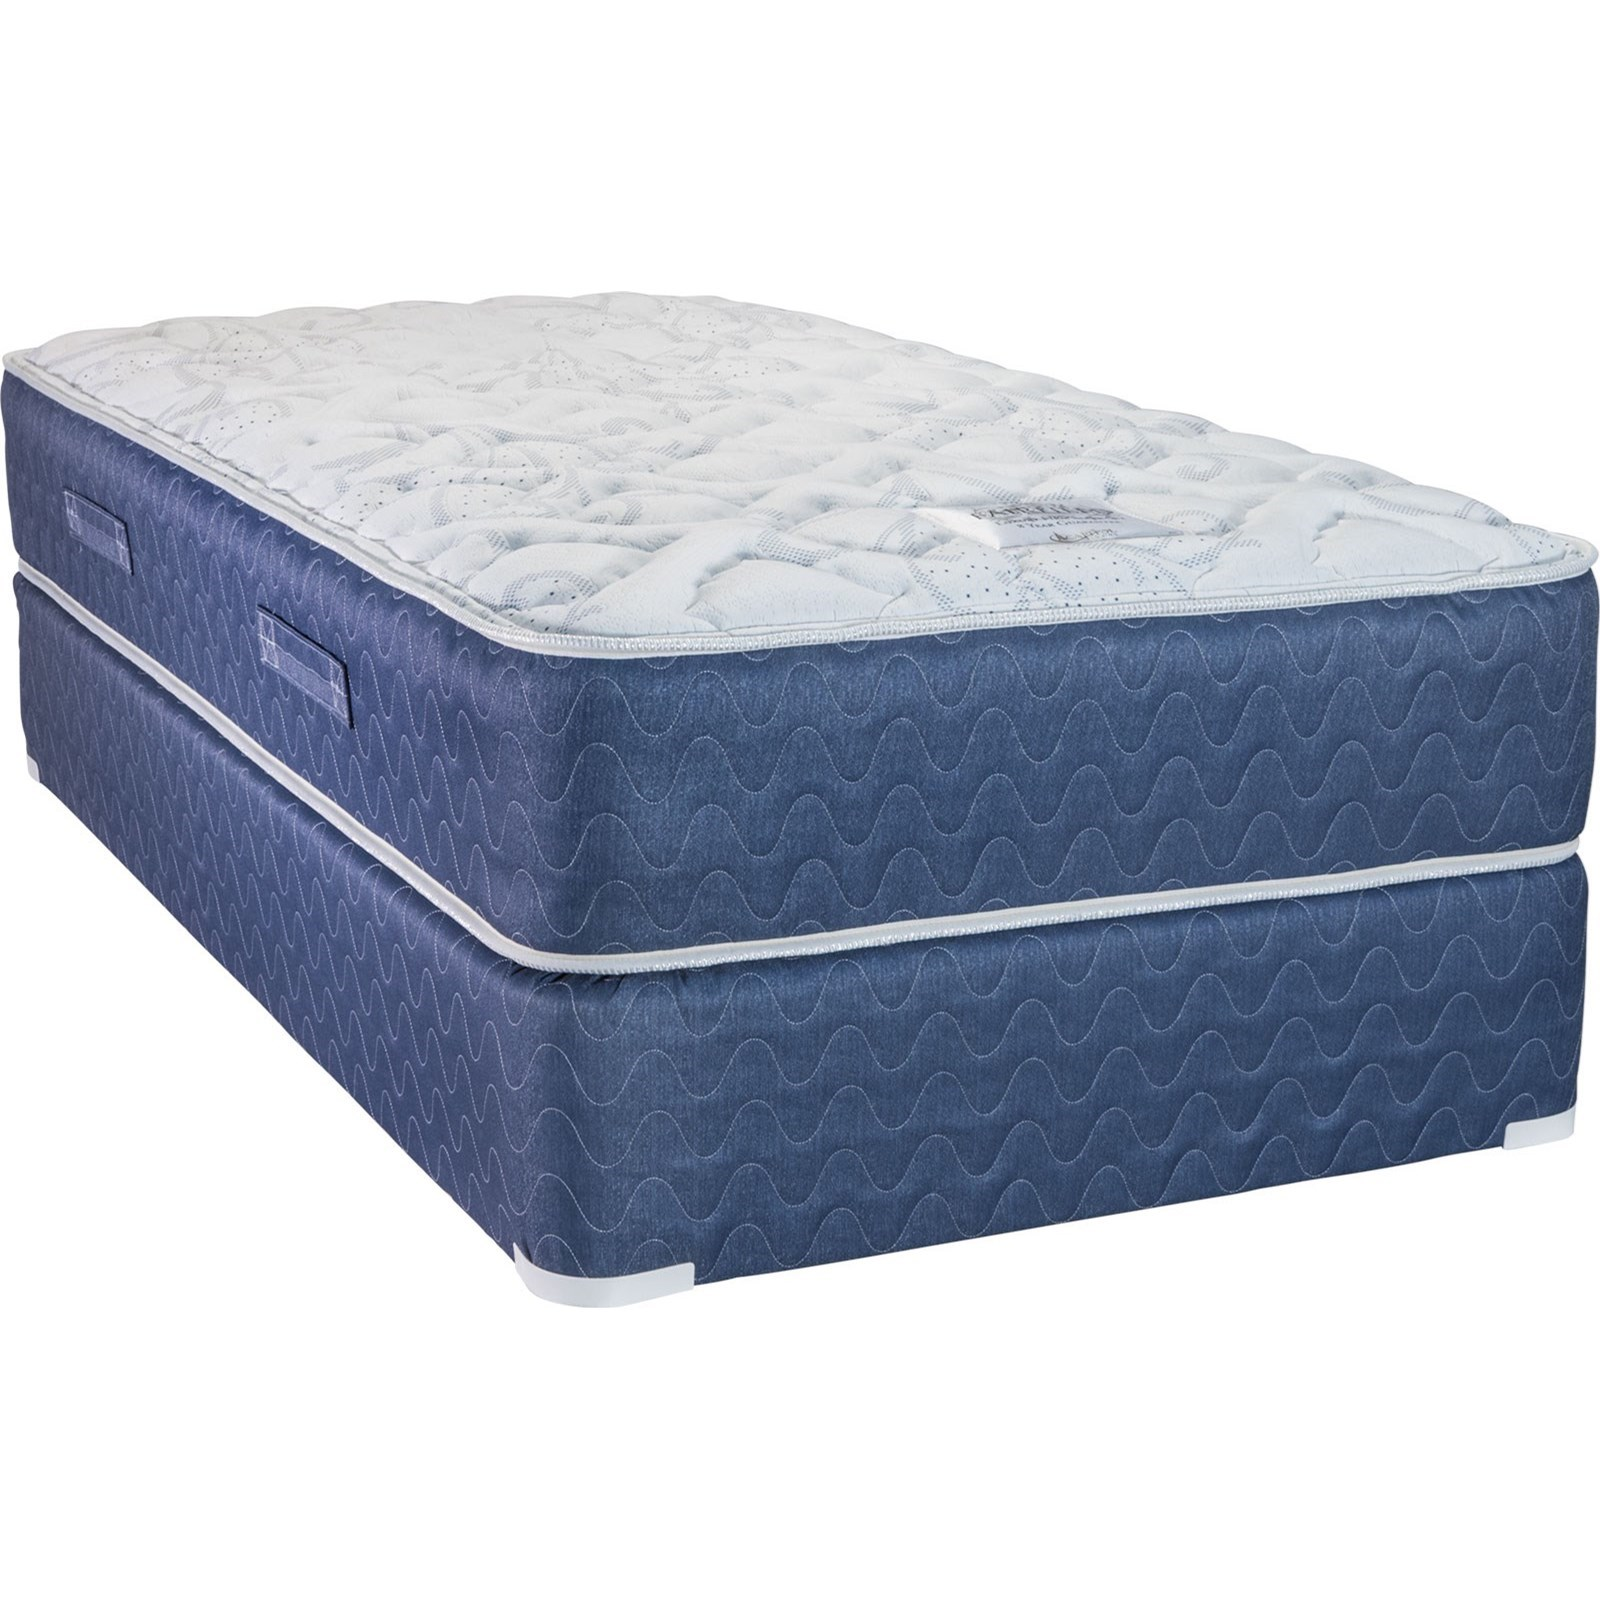 Low Profile Innerspring Mattress Capitol Bedding Melbourne Firm Queen Innerspring Mattress